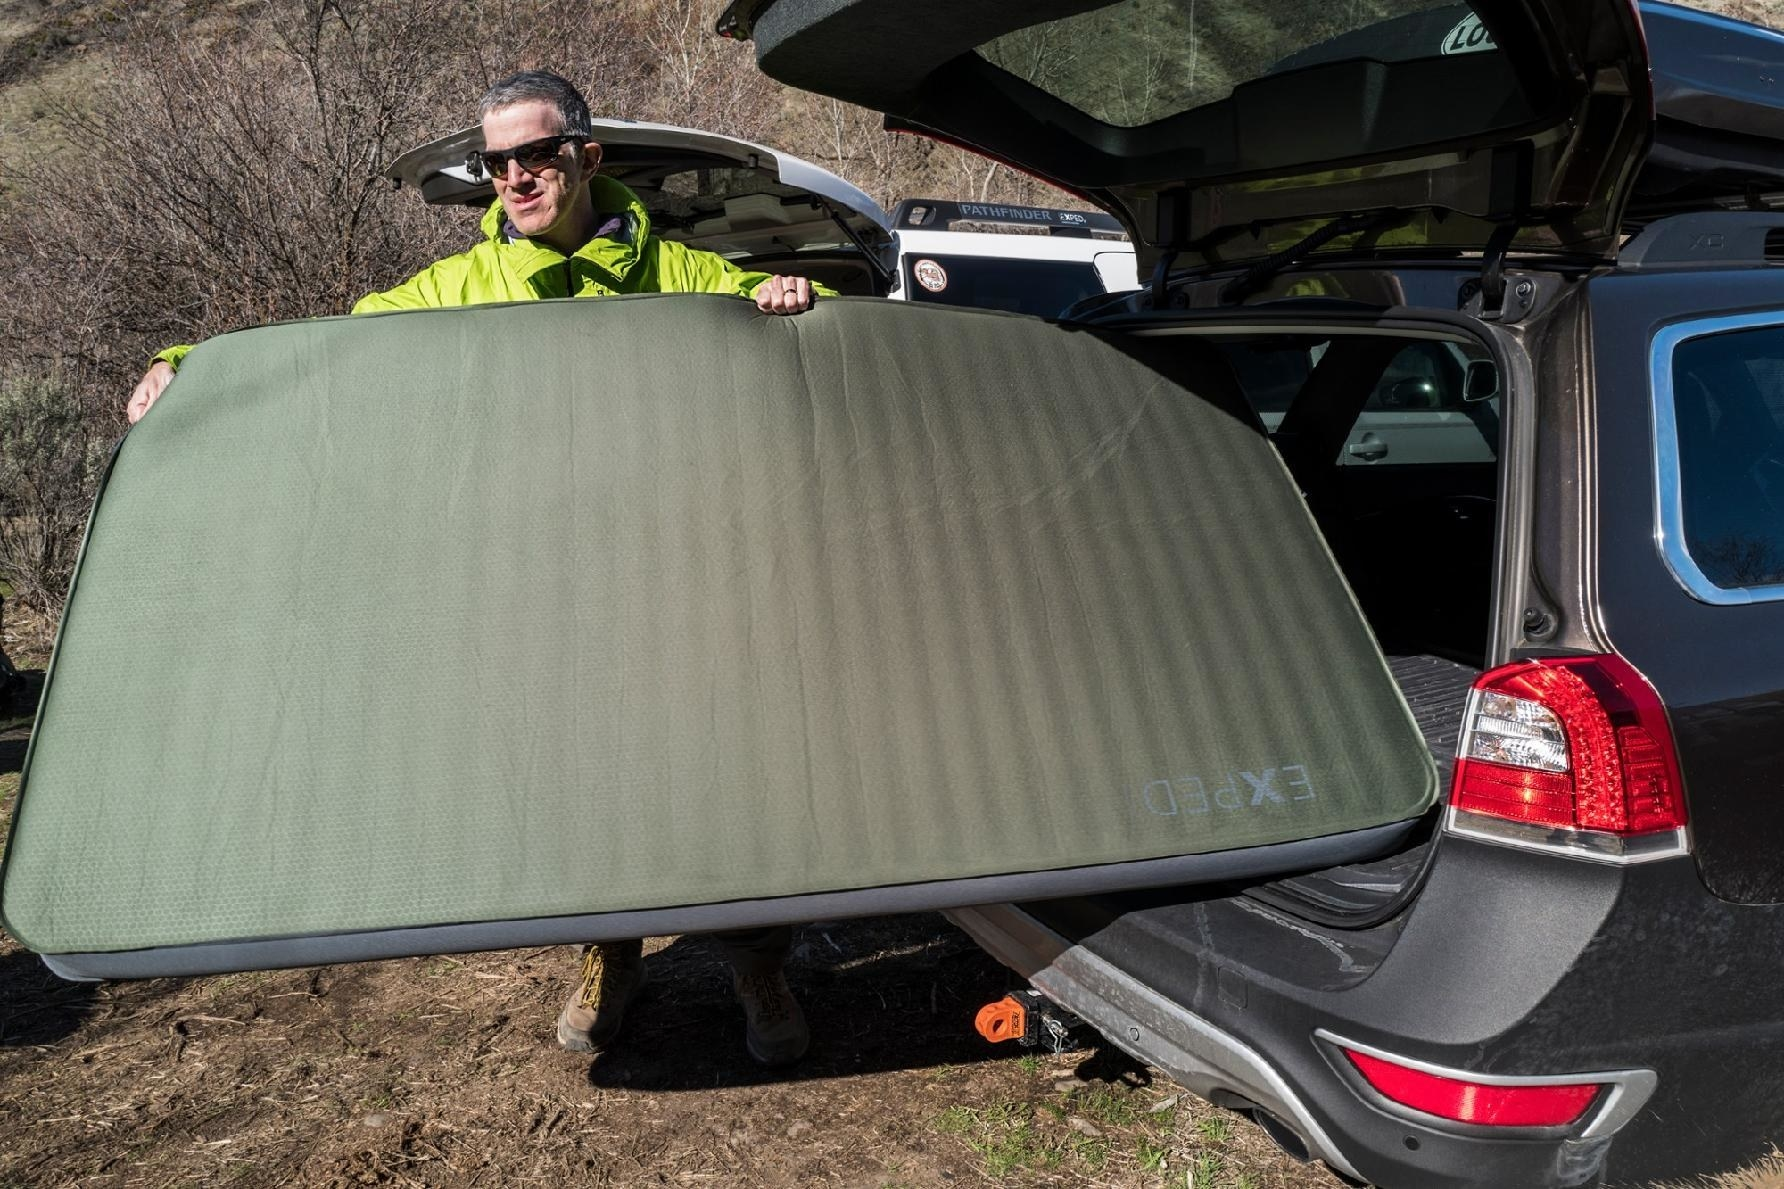 A person taking the sleeping pad out of the trunk of their car